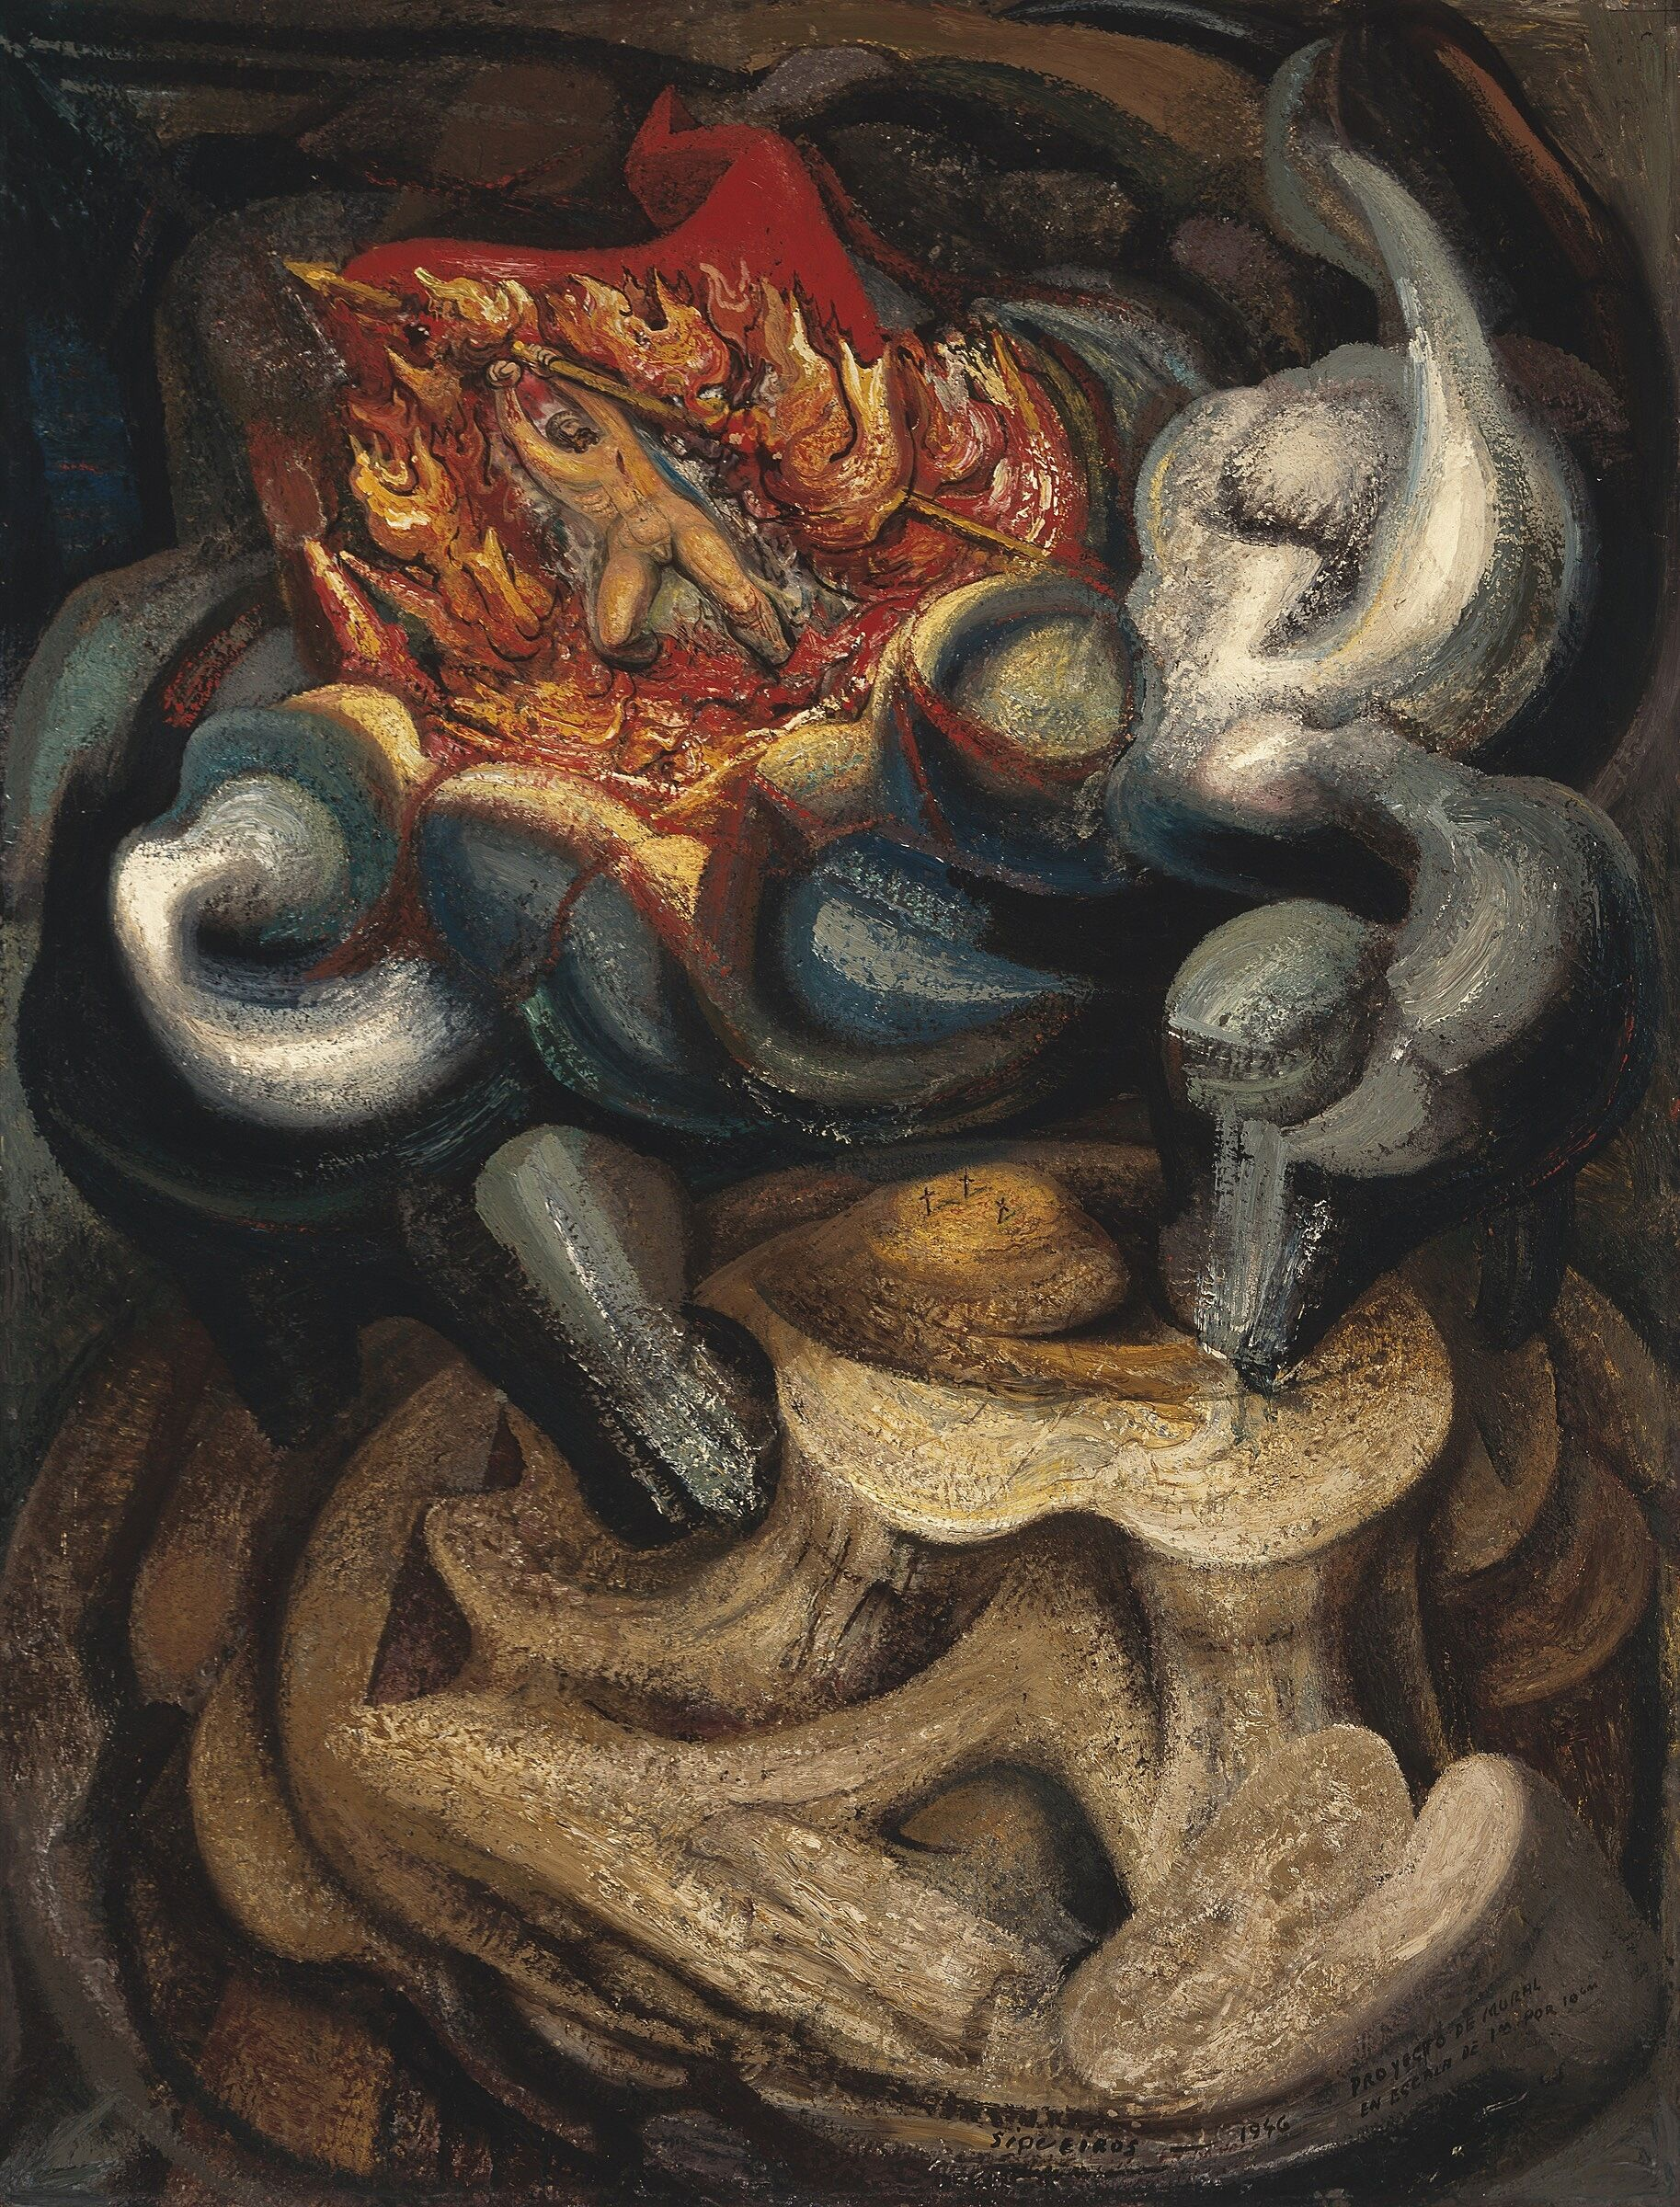 A semi-abstract painting with a small figure in flames with an arrow.